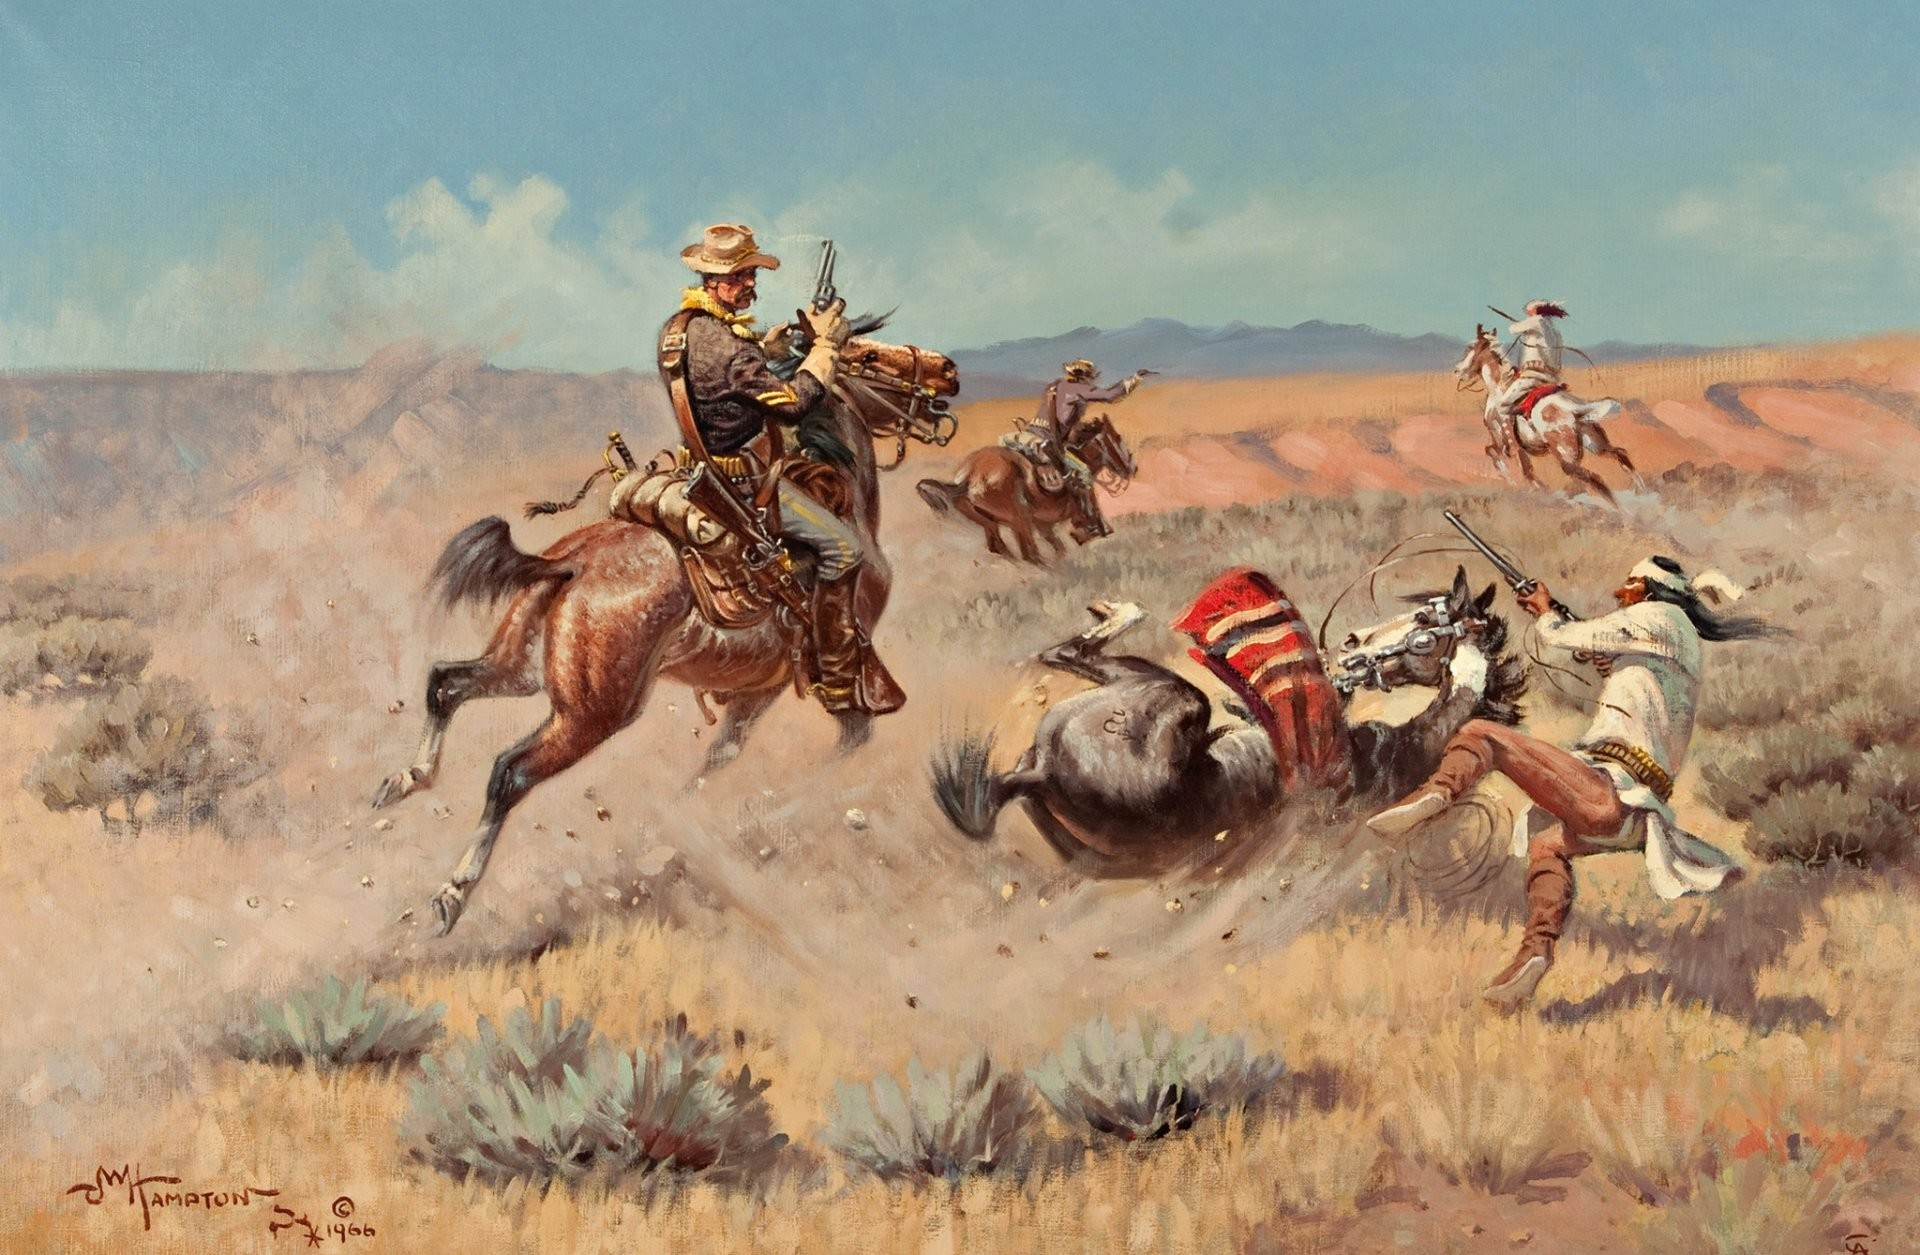 Res: 1920x1255, john wade hampton pattern prairie indian horse war sky mountain